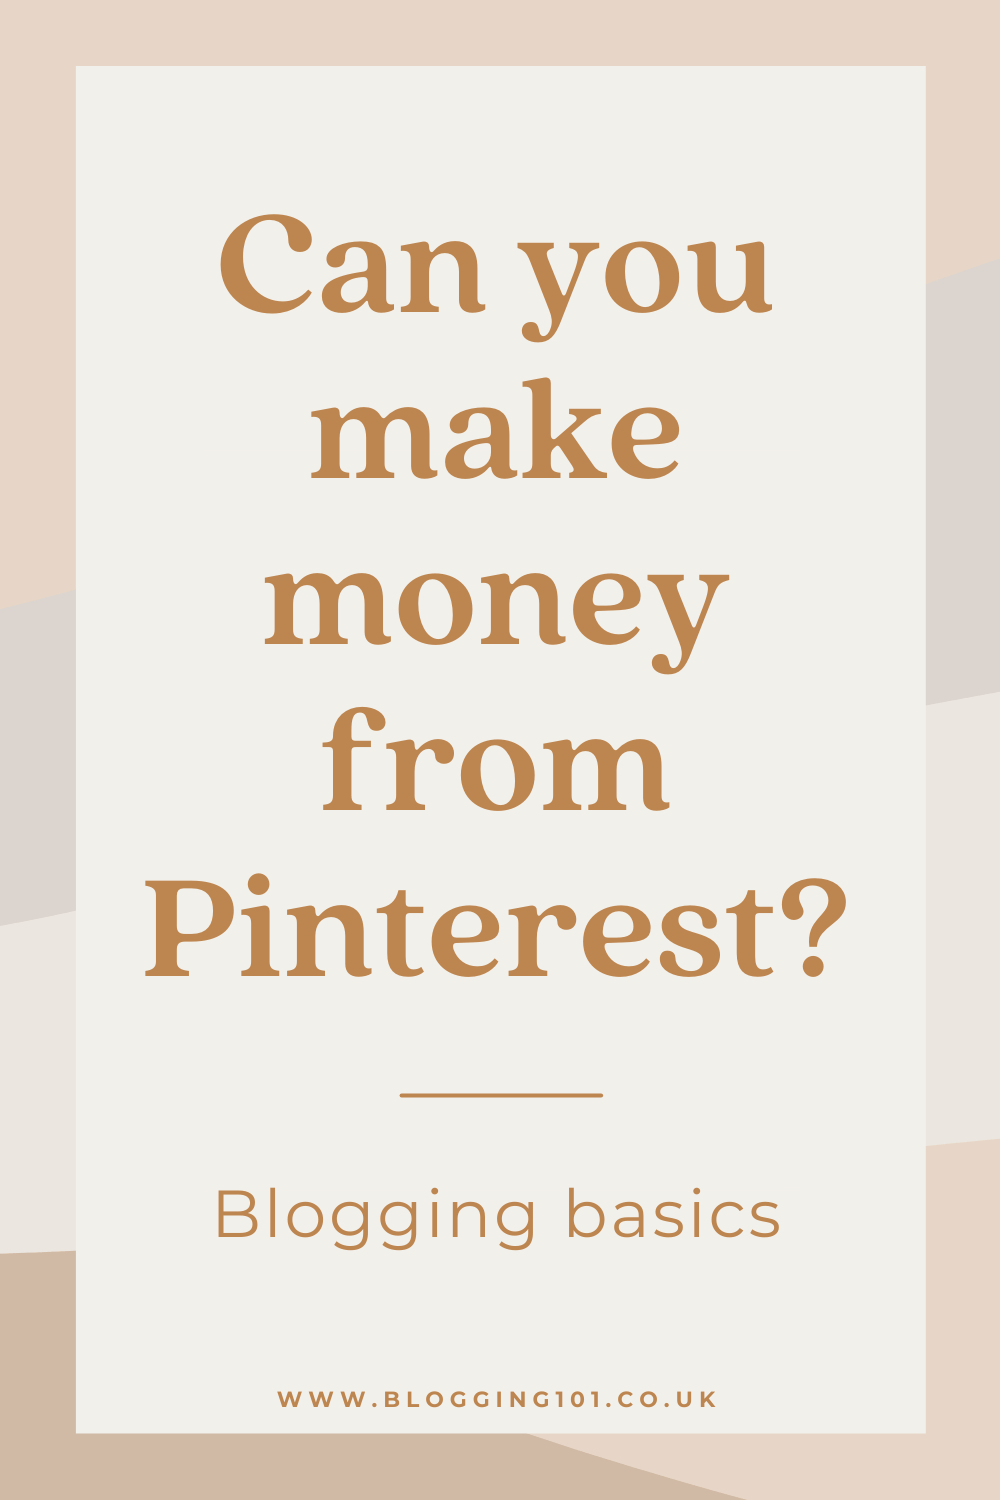 Can you make money from Pinterest